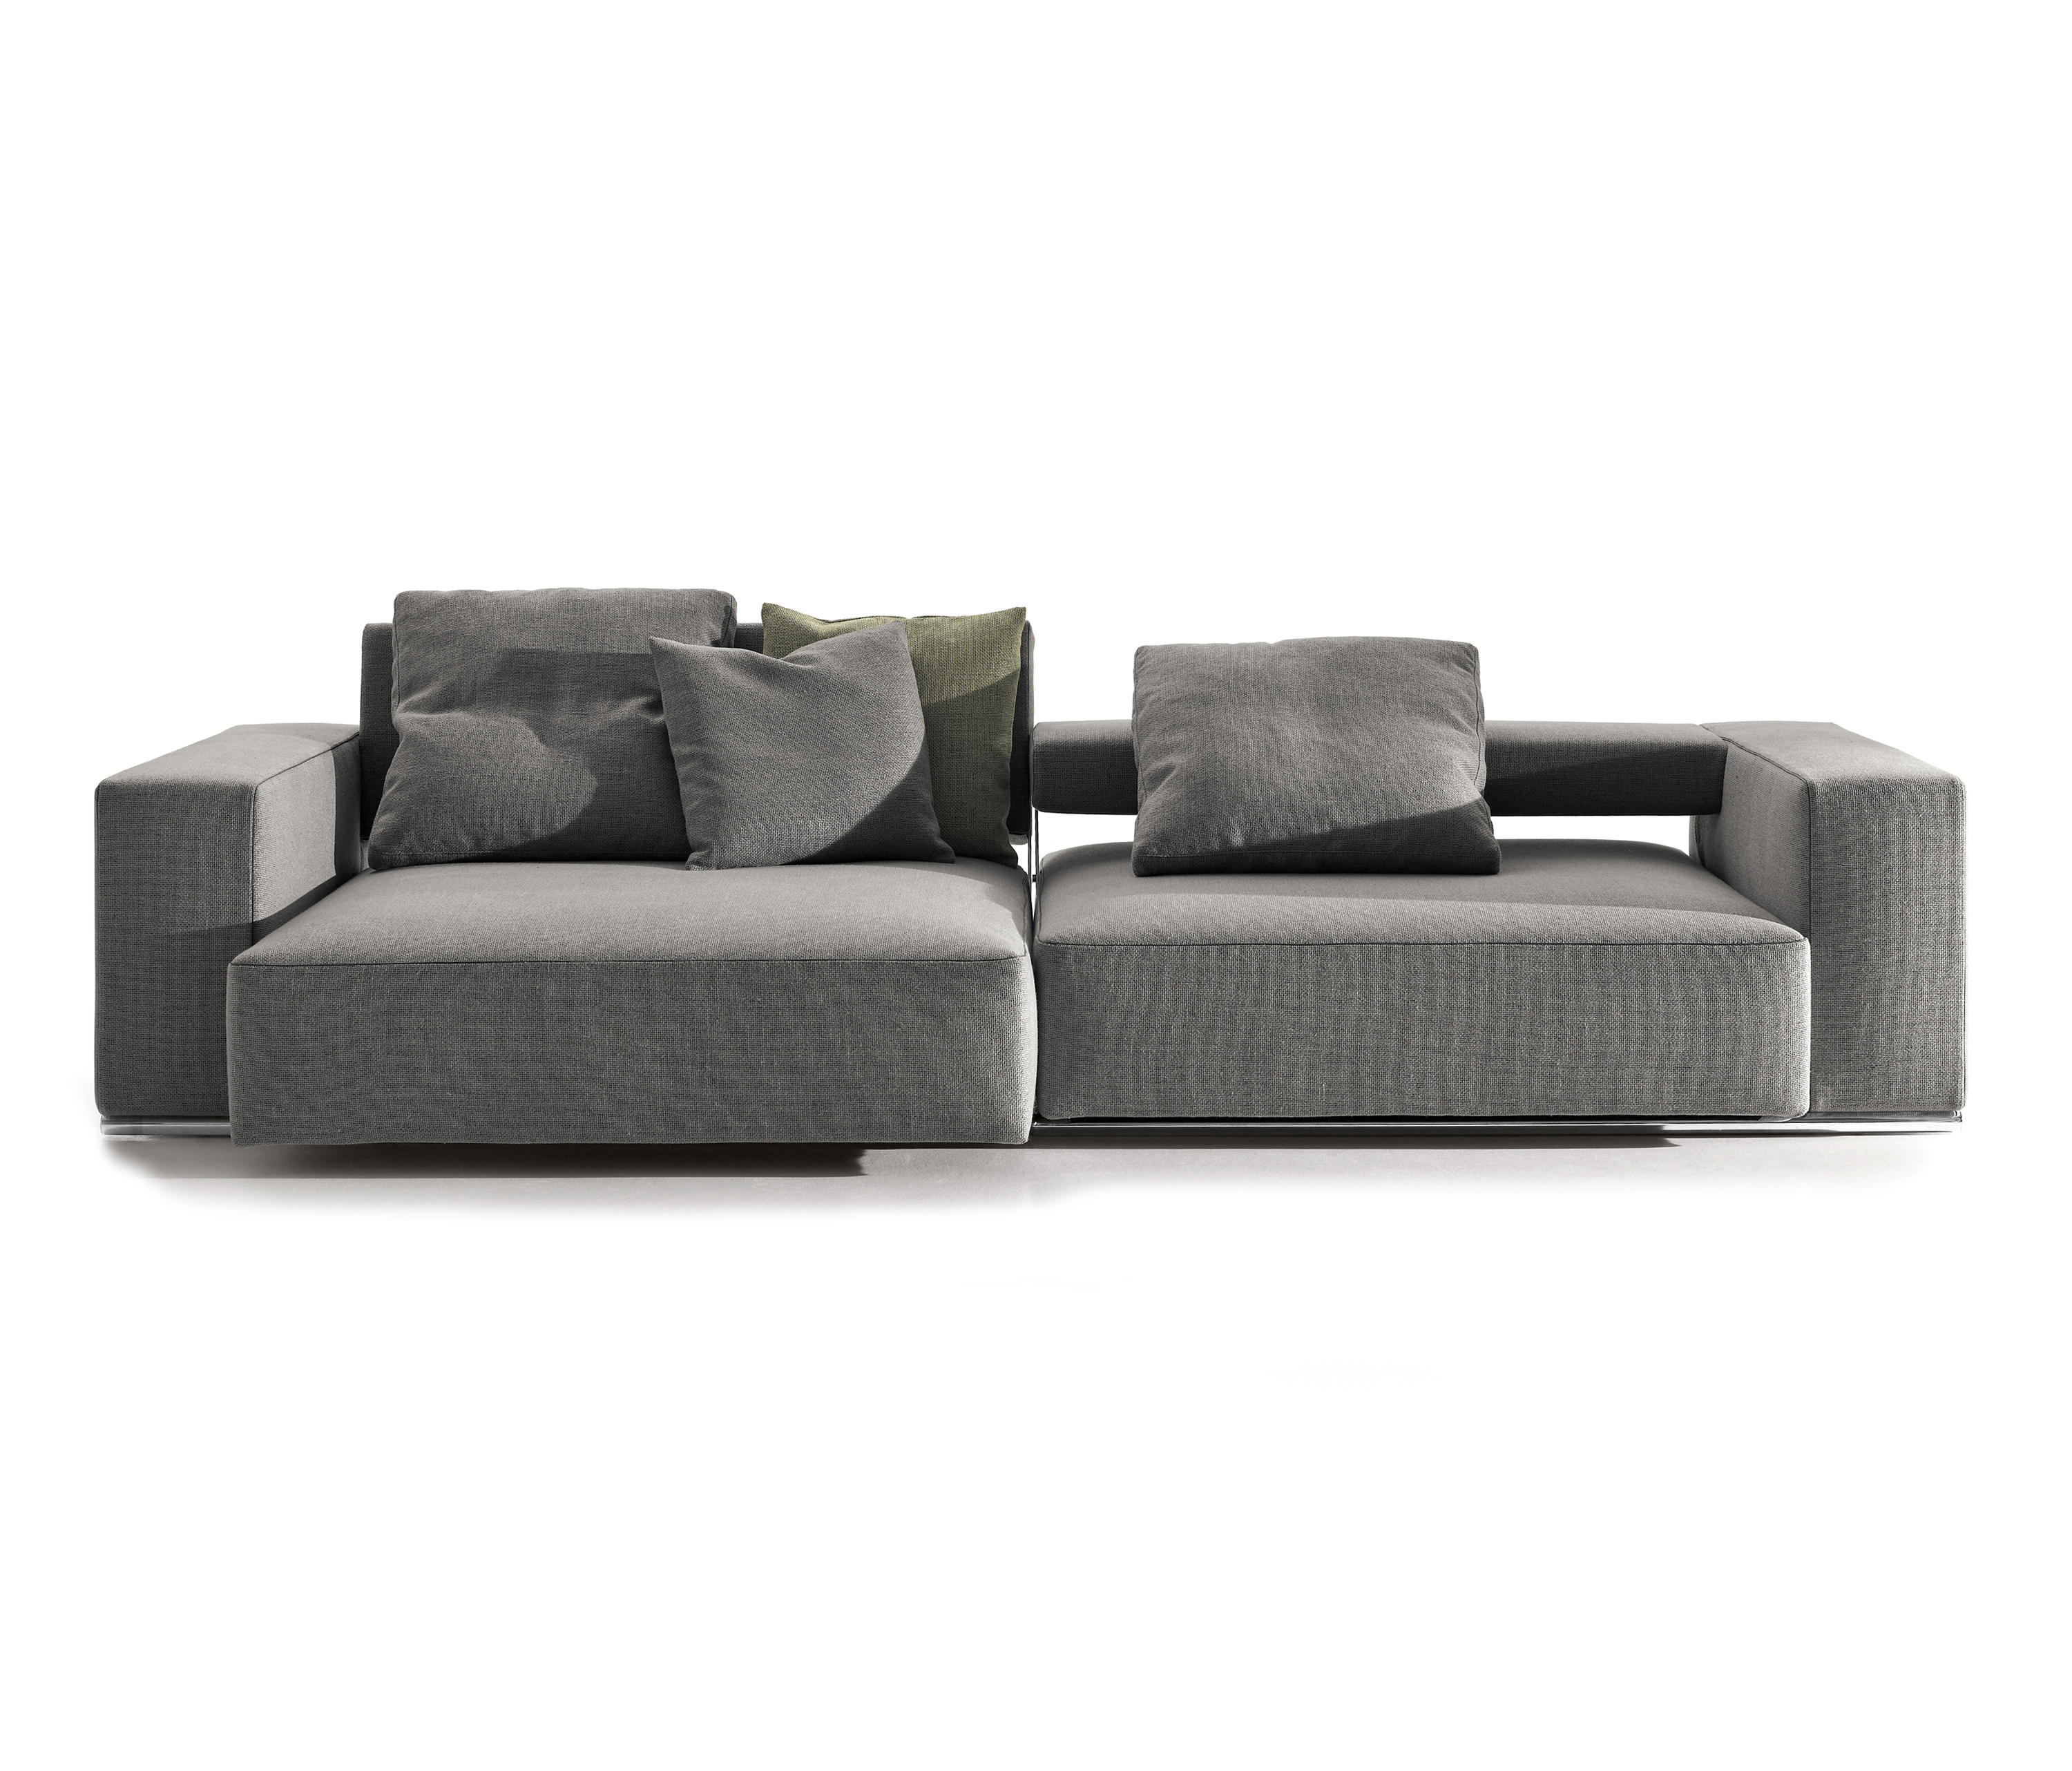 Andy 39 13 sofas from b b italia architonic for B en b italia